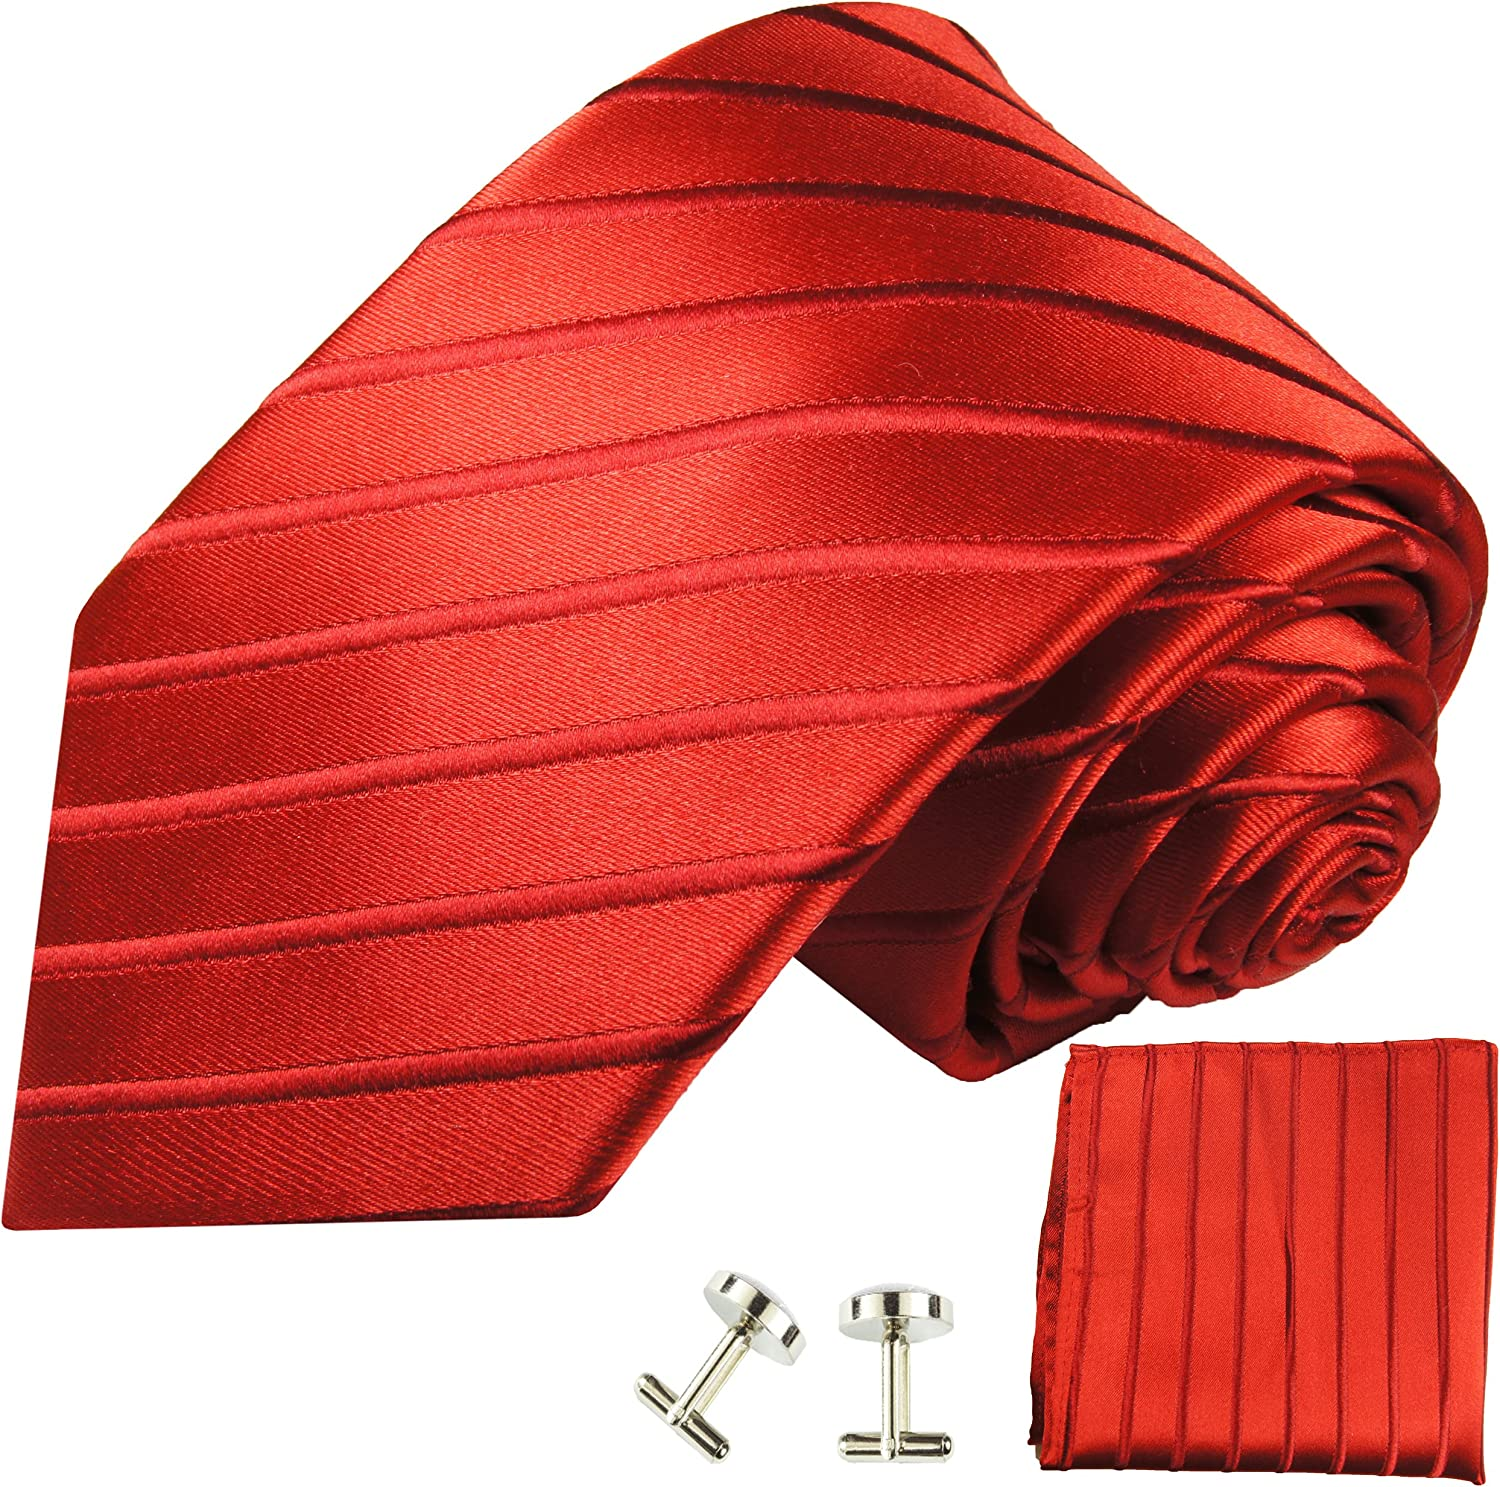 Exclusive Tango Red Silk Tie with Pocket Square and Cufflinks